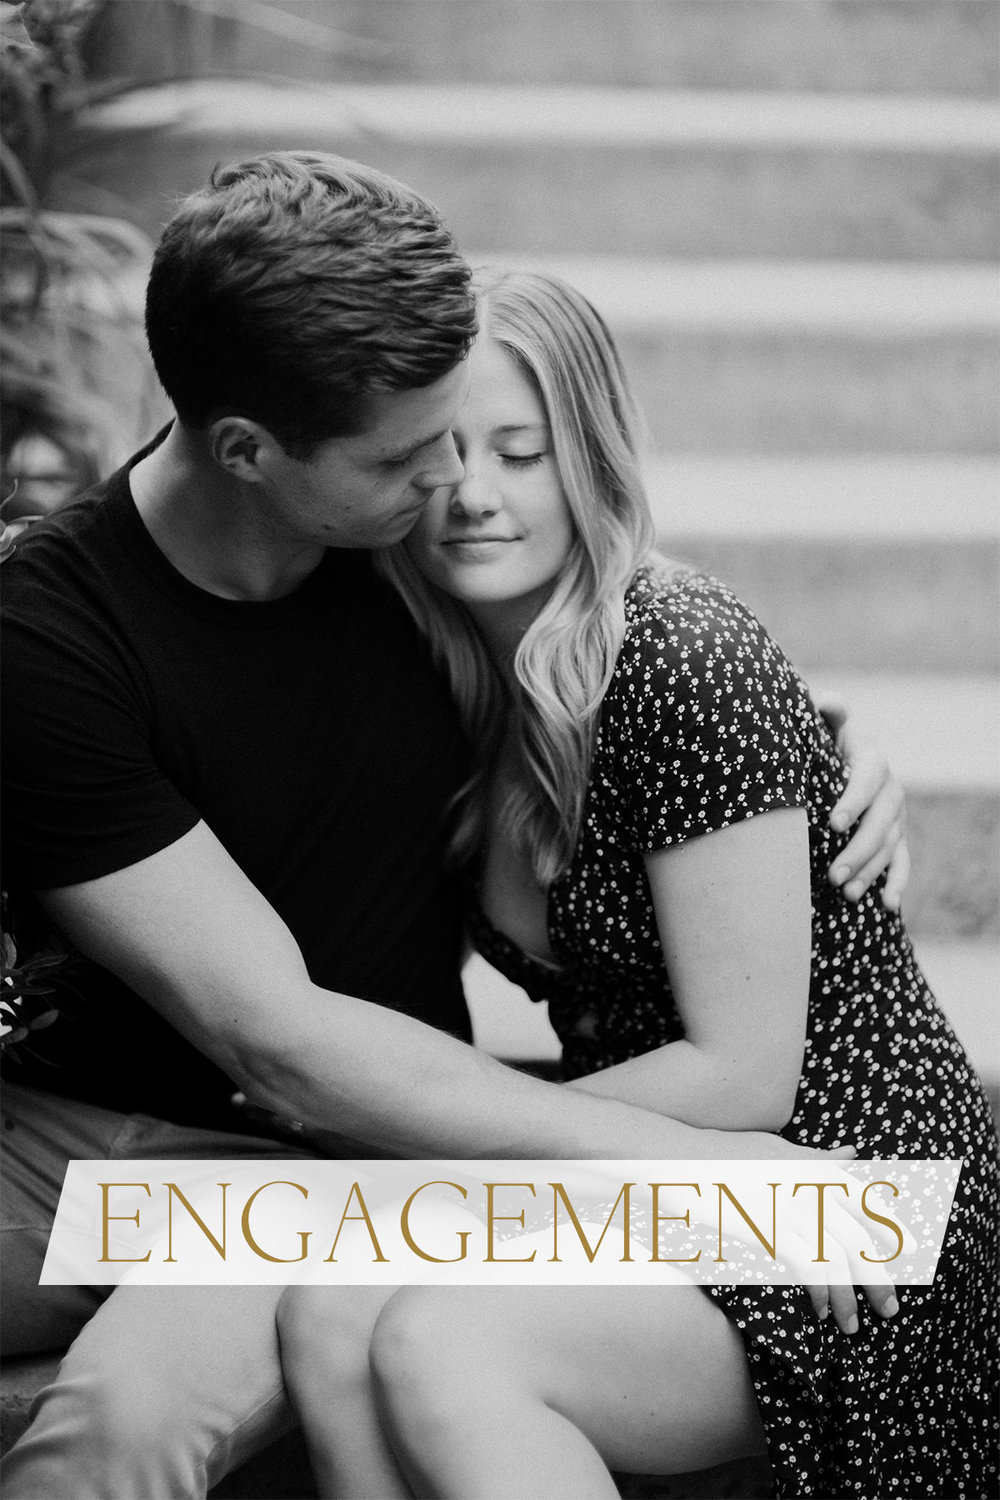 New York Engagement Photos, Brooklyn Engagement Photography, Brooklyn Bridge Engagement, West Village Engagement Photos, Central Park Engagement Photography, Home Engagement Session